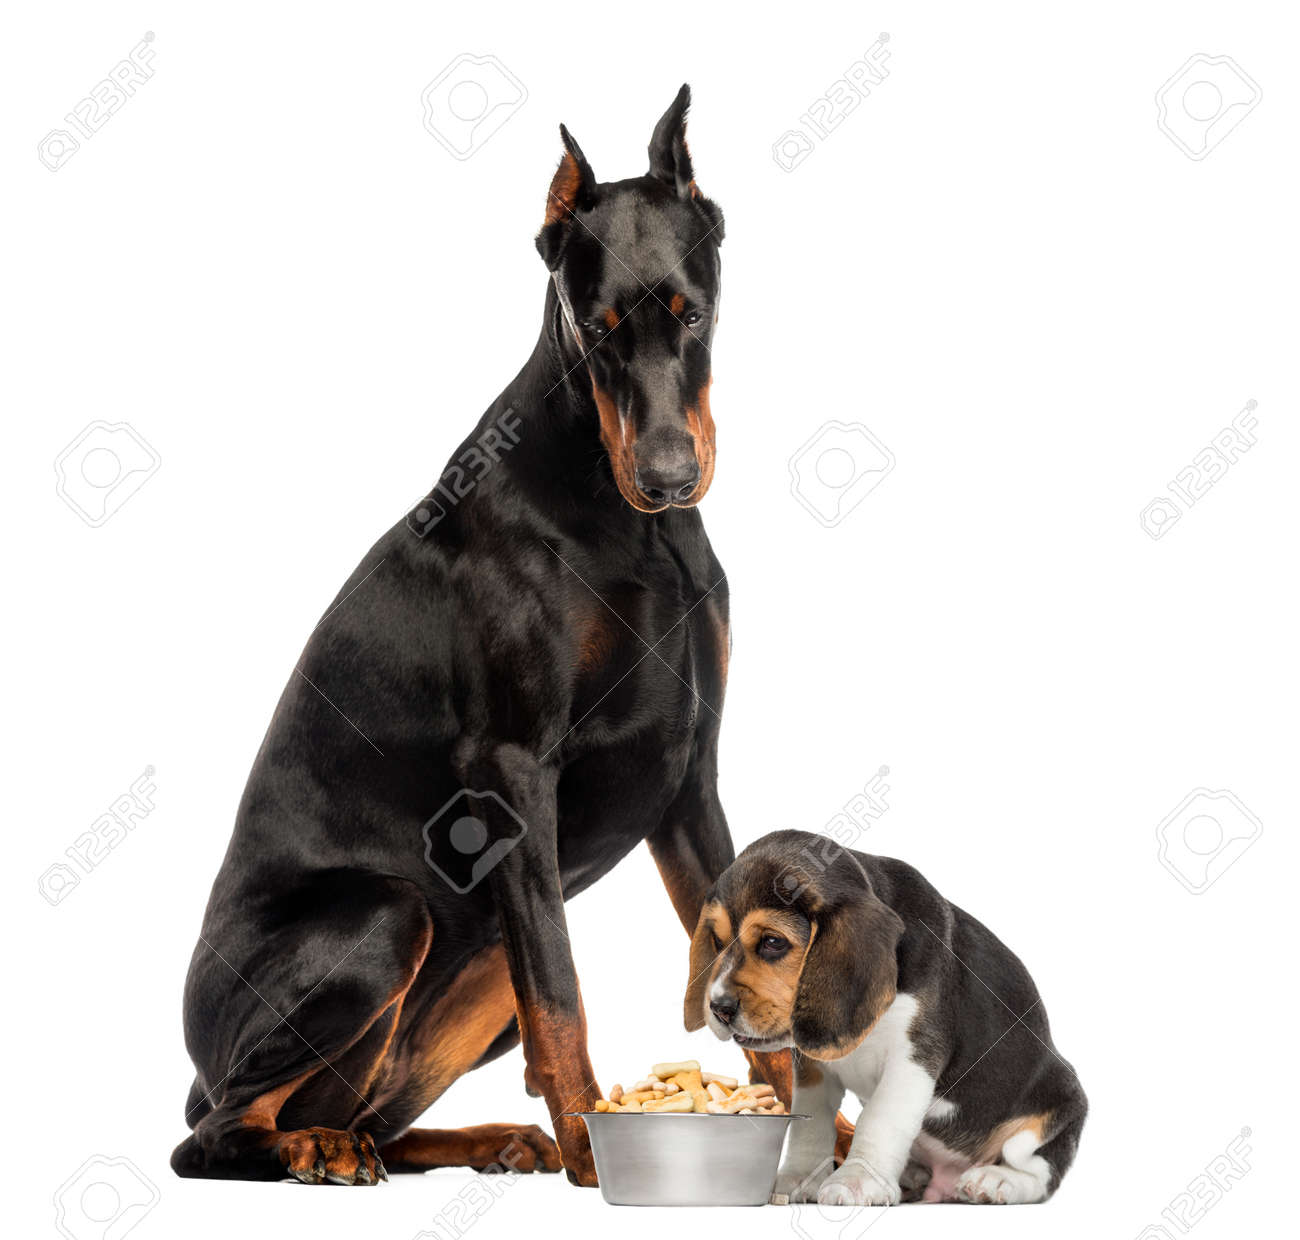 Doberman Pinscher Sittingand Looking Down At A Beagle Puppy Eating Stock Photo Picture And Royalty Free Image Image 27015776